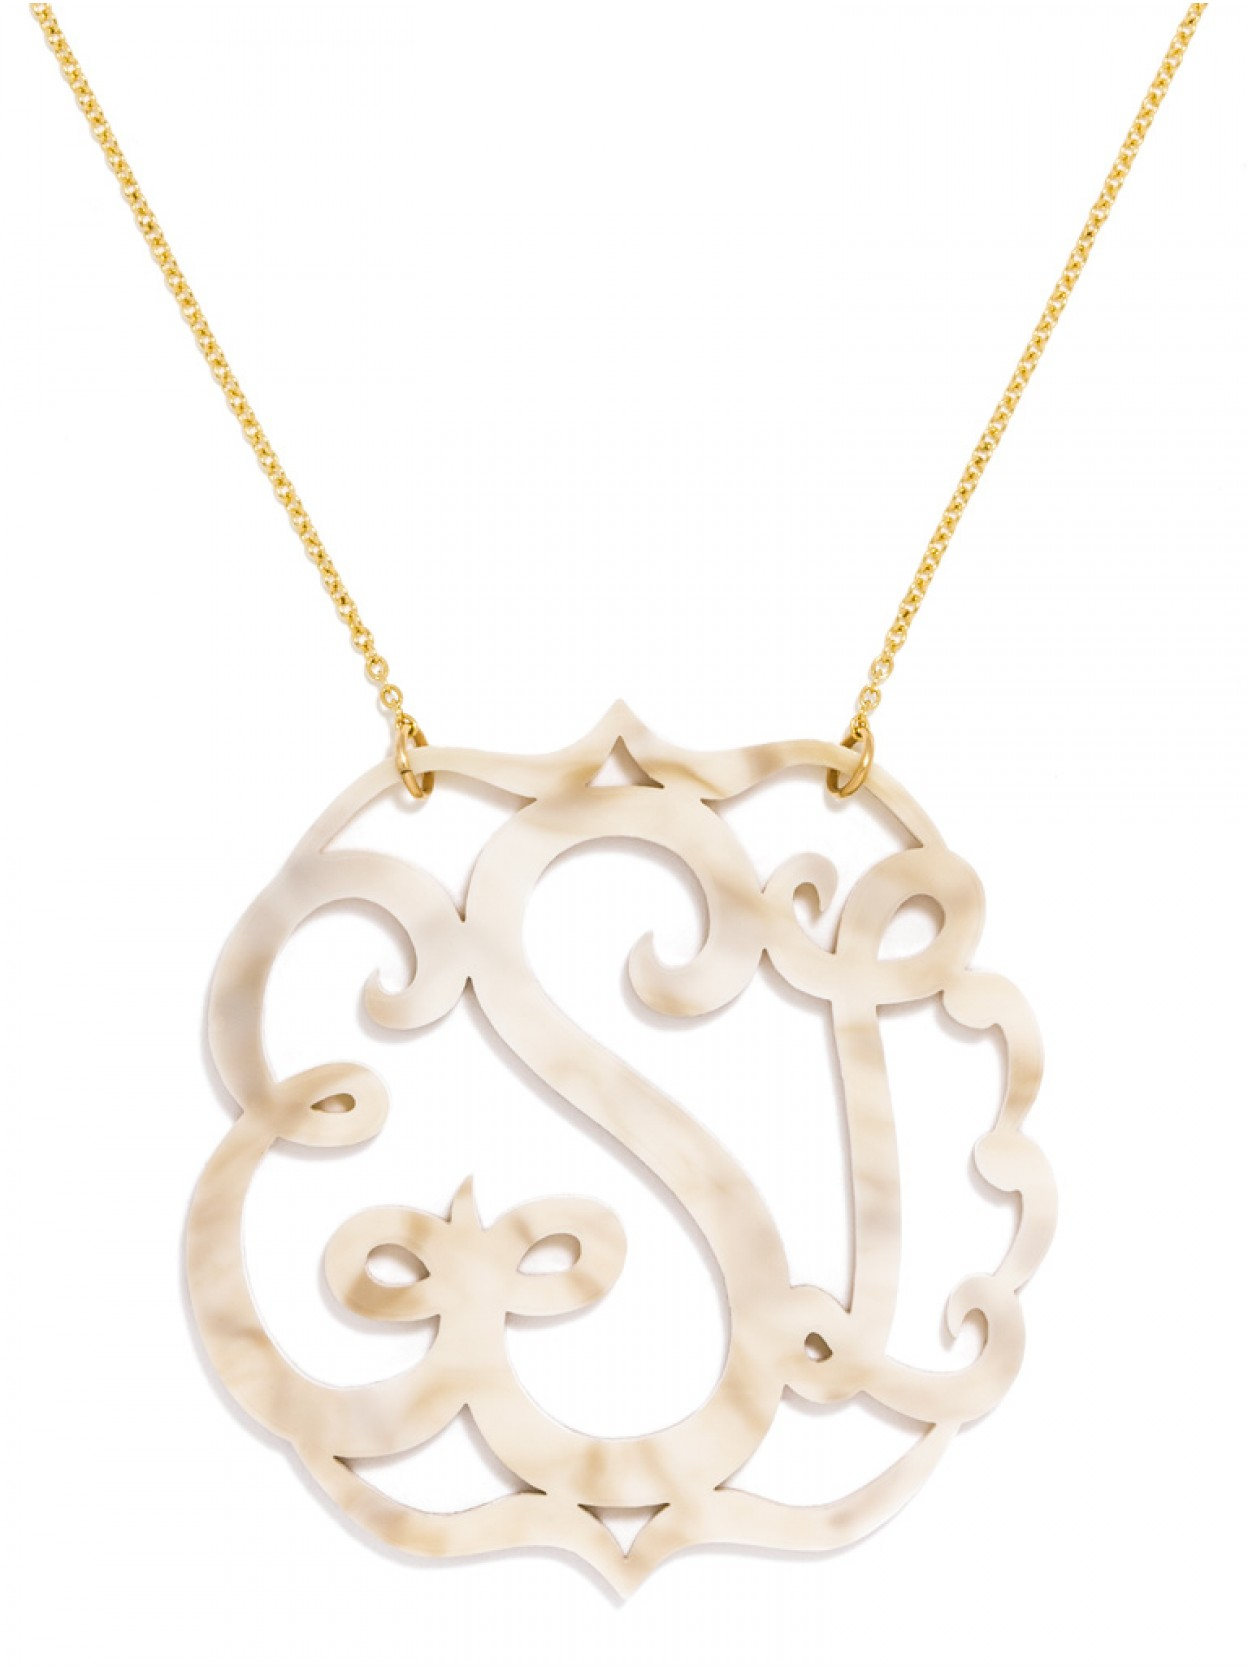 Large monogram pendant